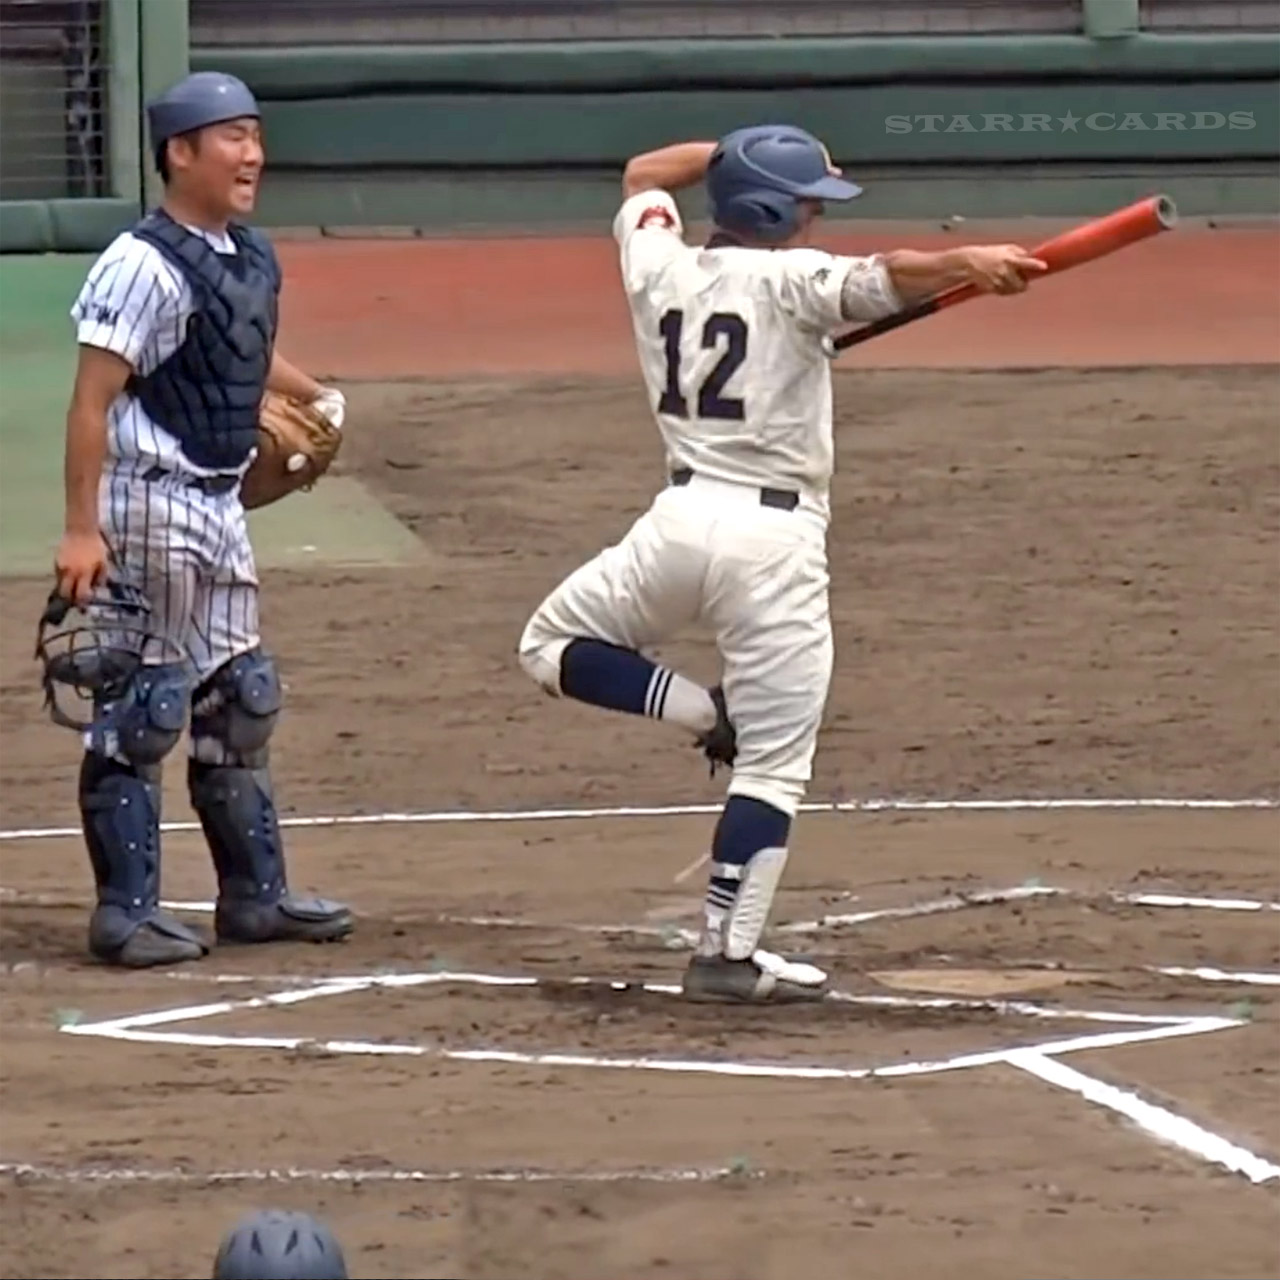 Amazing bat flipping by Japanese high school baseball player